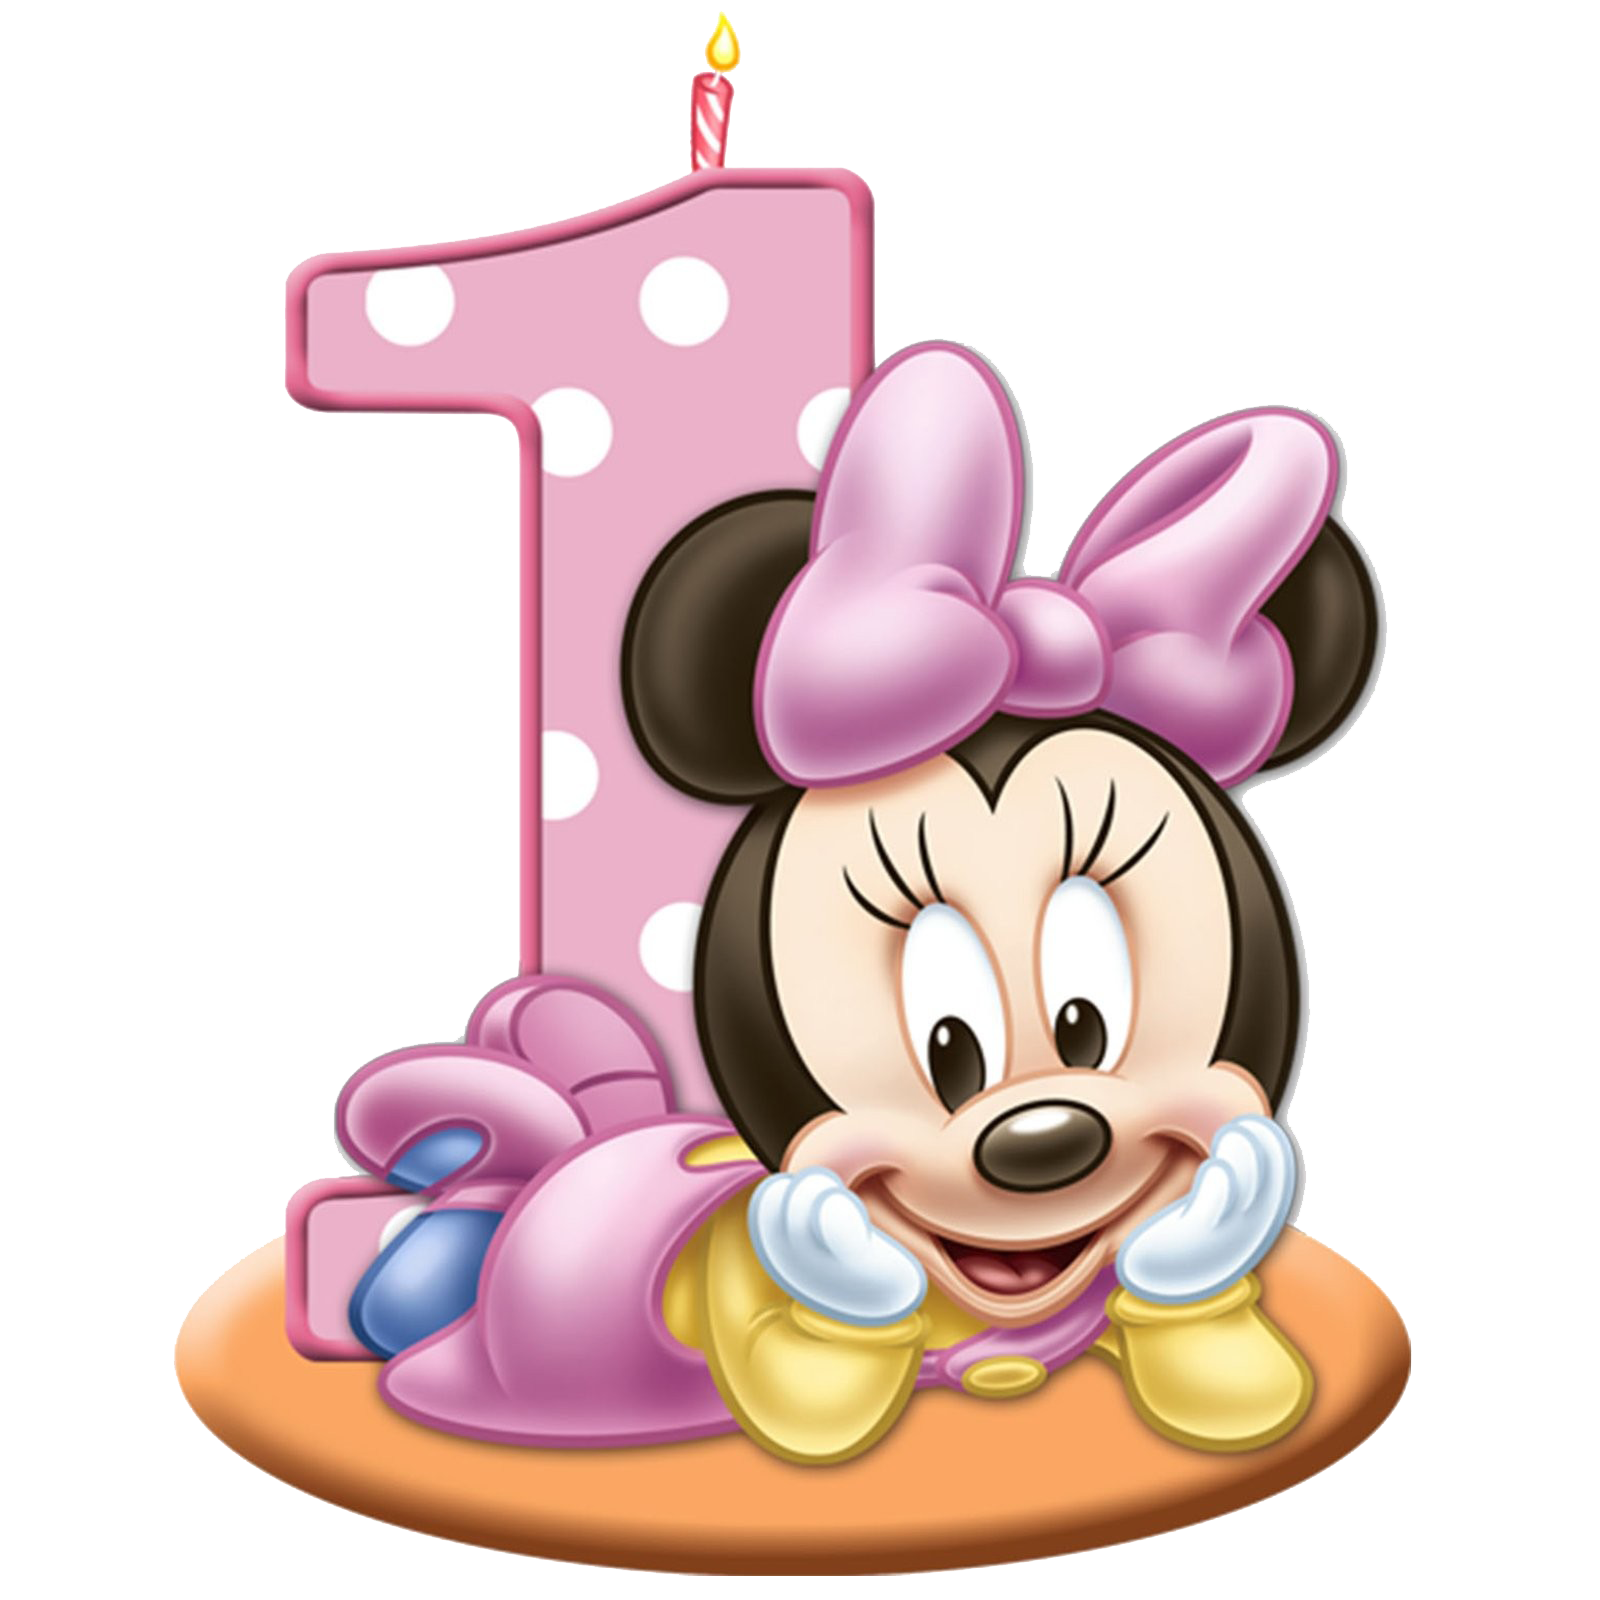 Minnie mouse baby png. Transparent images all